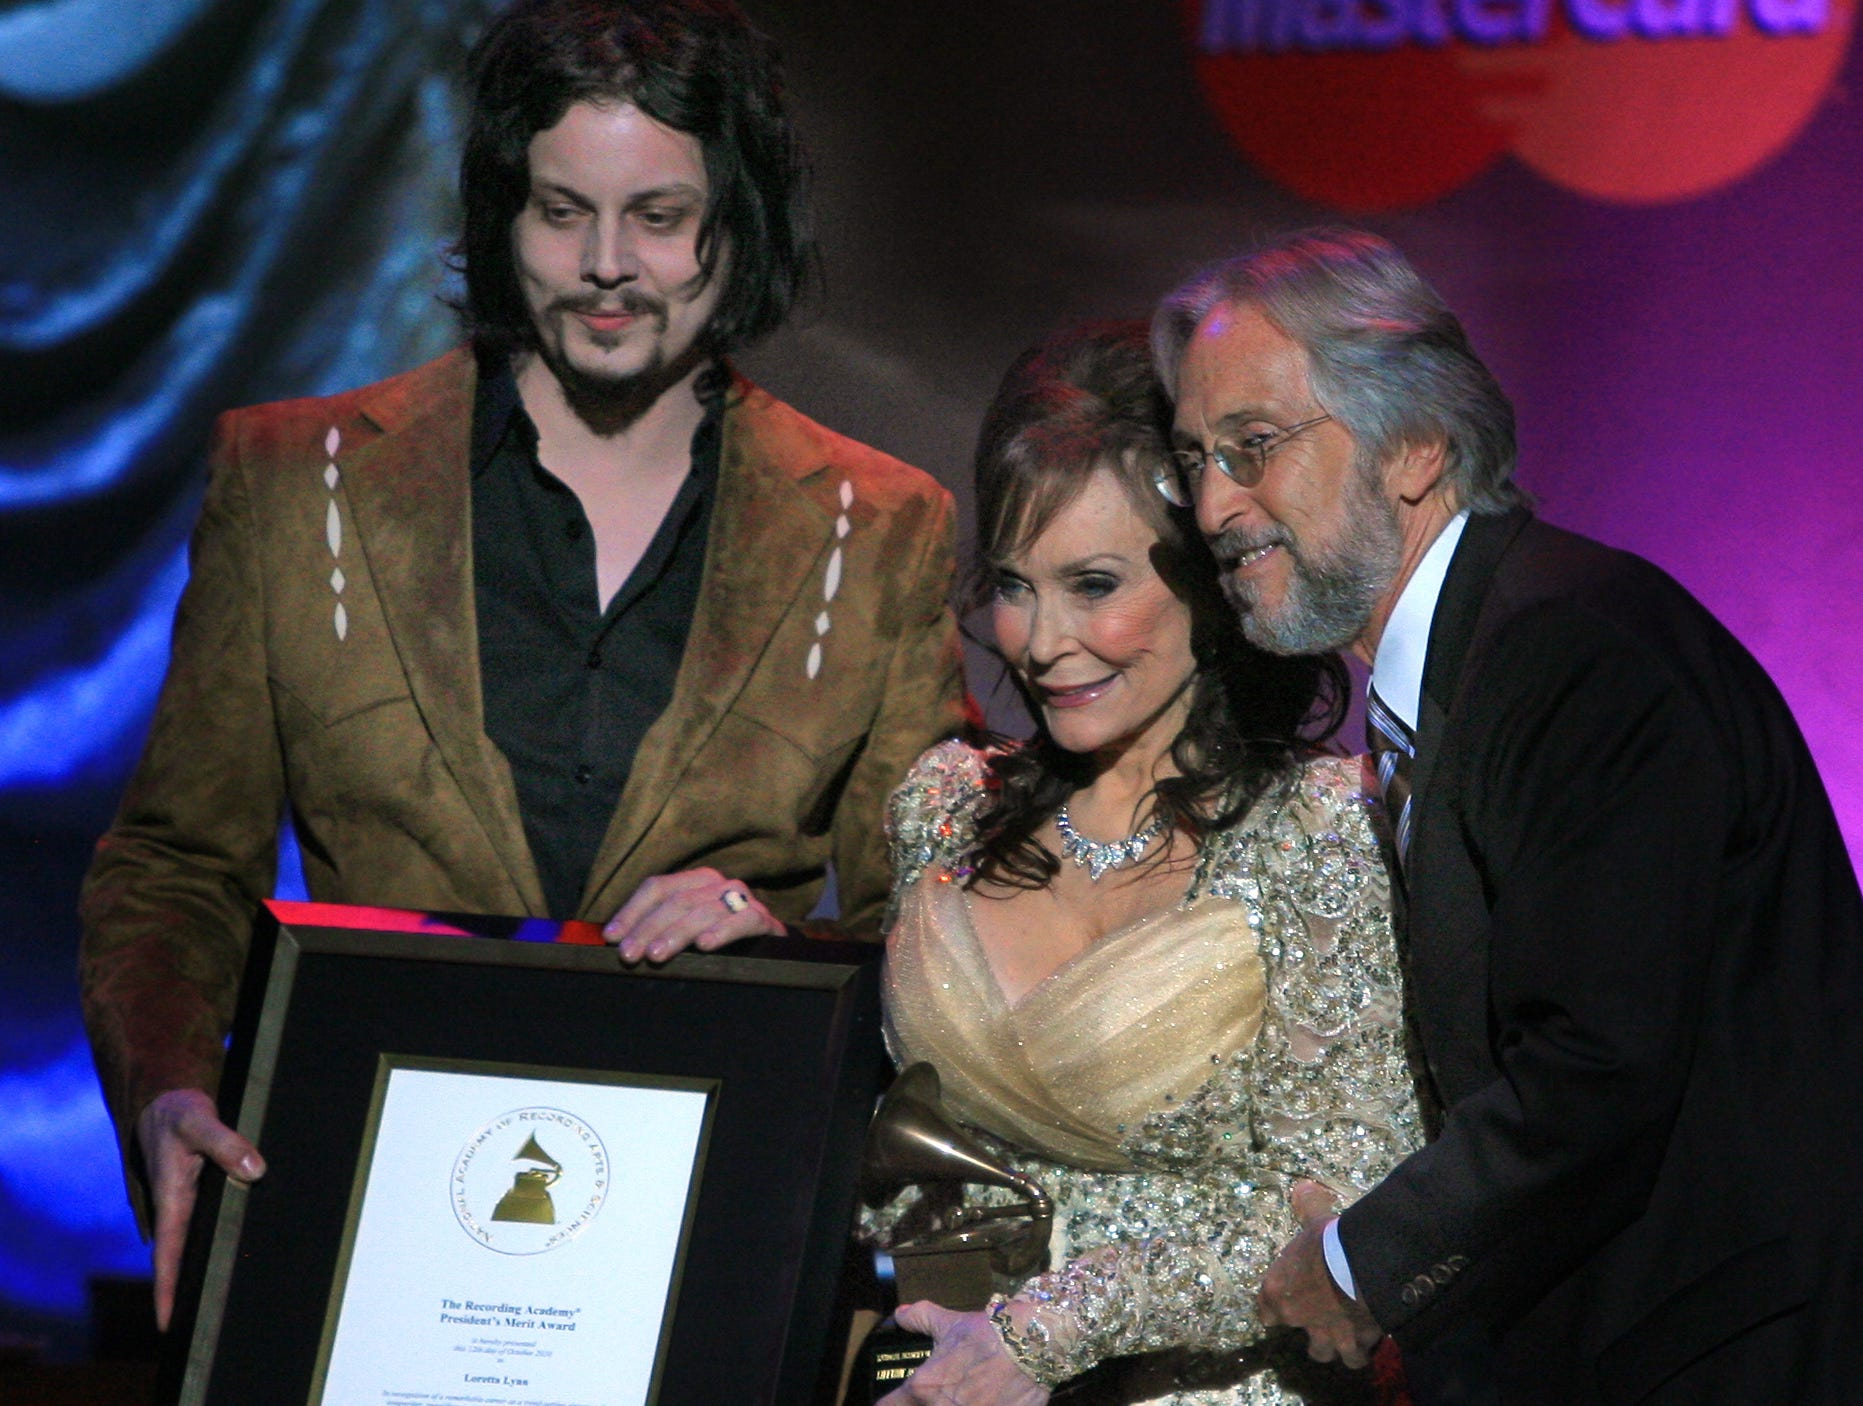 Eight time grammy winner Jack White, left, and the Recording Academy President and CEO Neil Portnow, right, present Loretta Lynn with a special presentation of the Recording Academy President's Merit Award in honor of her dynamic career and contributions to country music at the Ryman Auditorium Oct. 12, 2010 in Nashville.